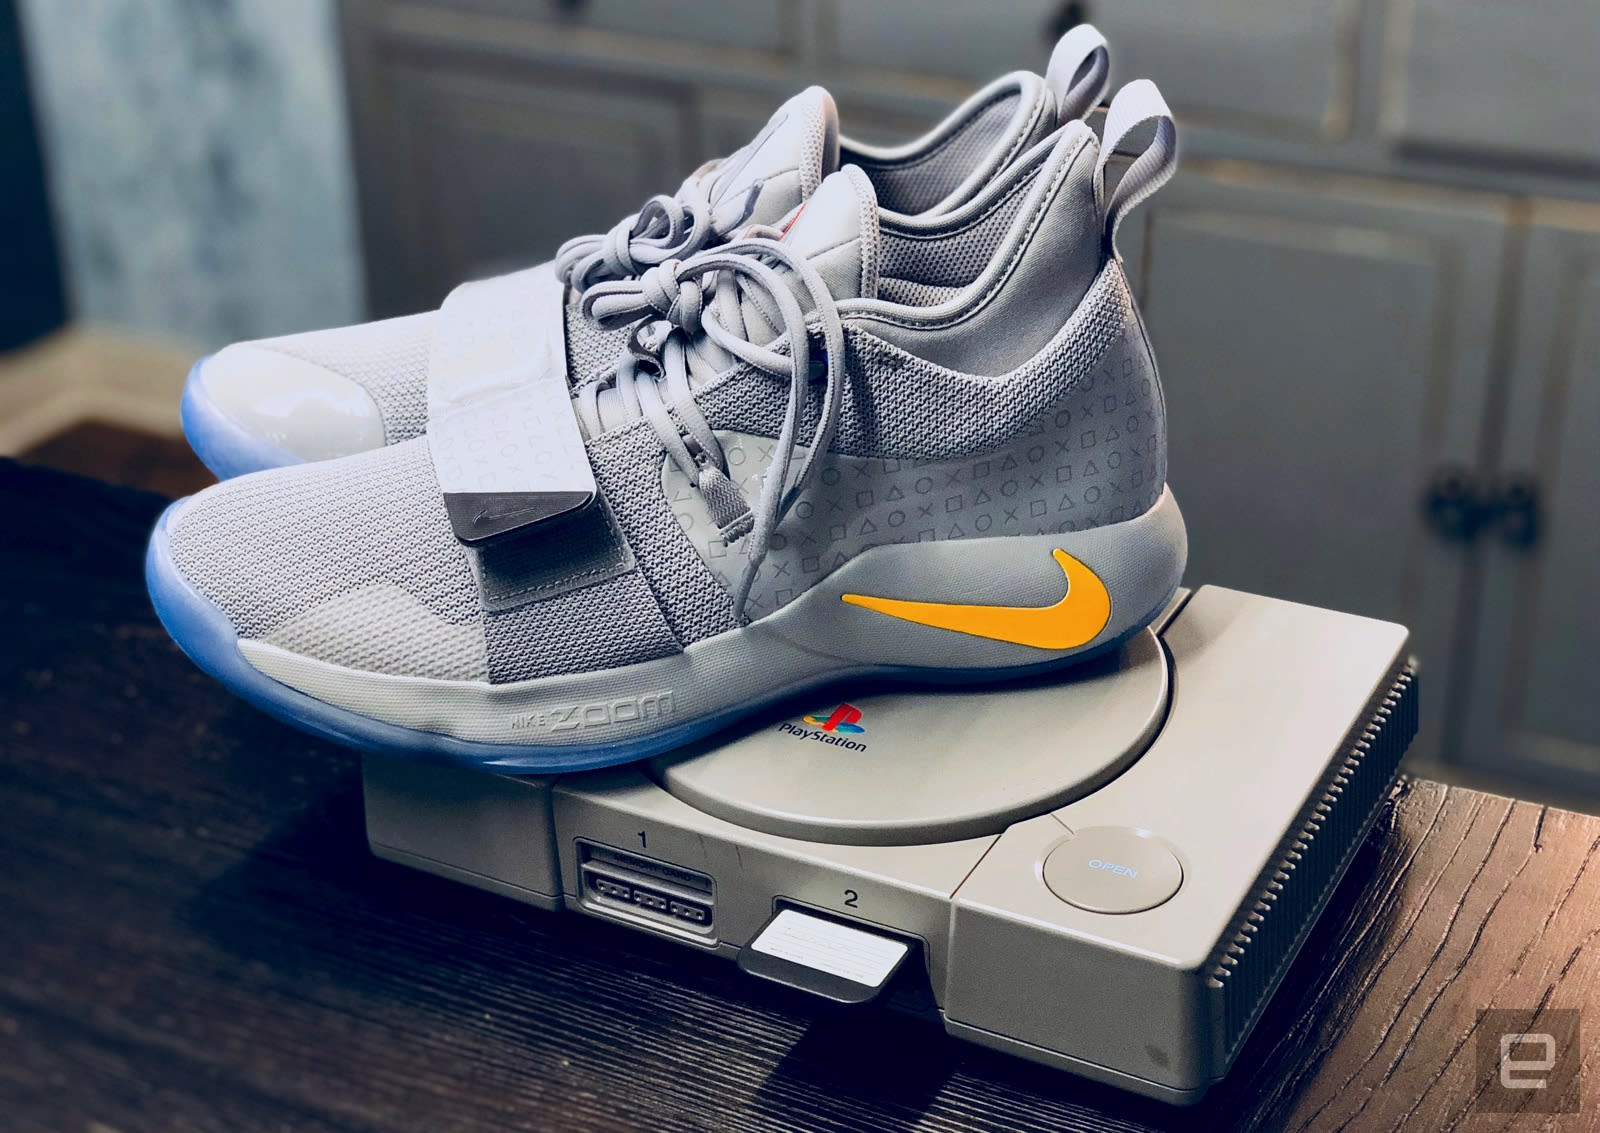 d3363c056895 Nike s new PlayStation sneakers pay homage to Sony s classic console